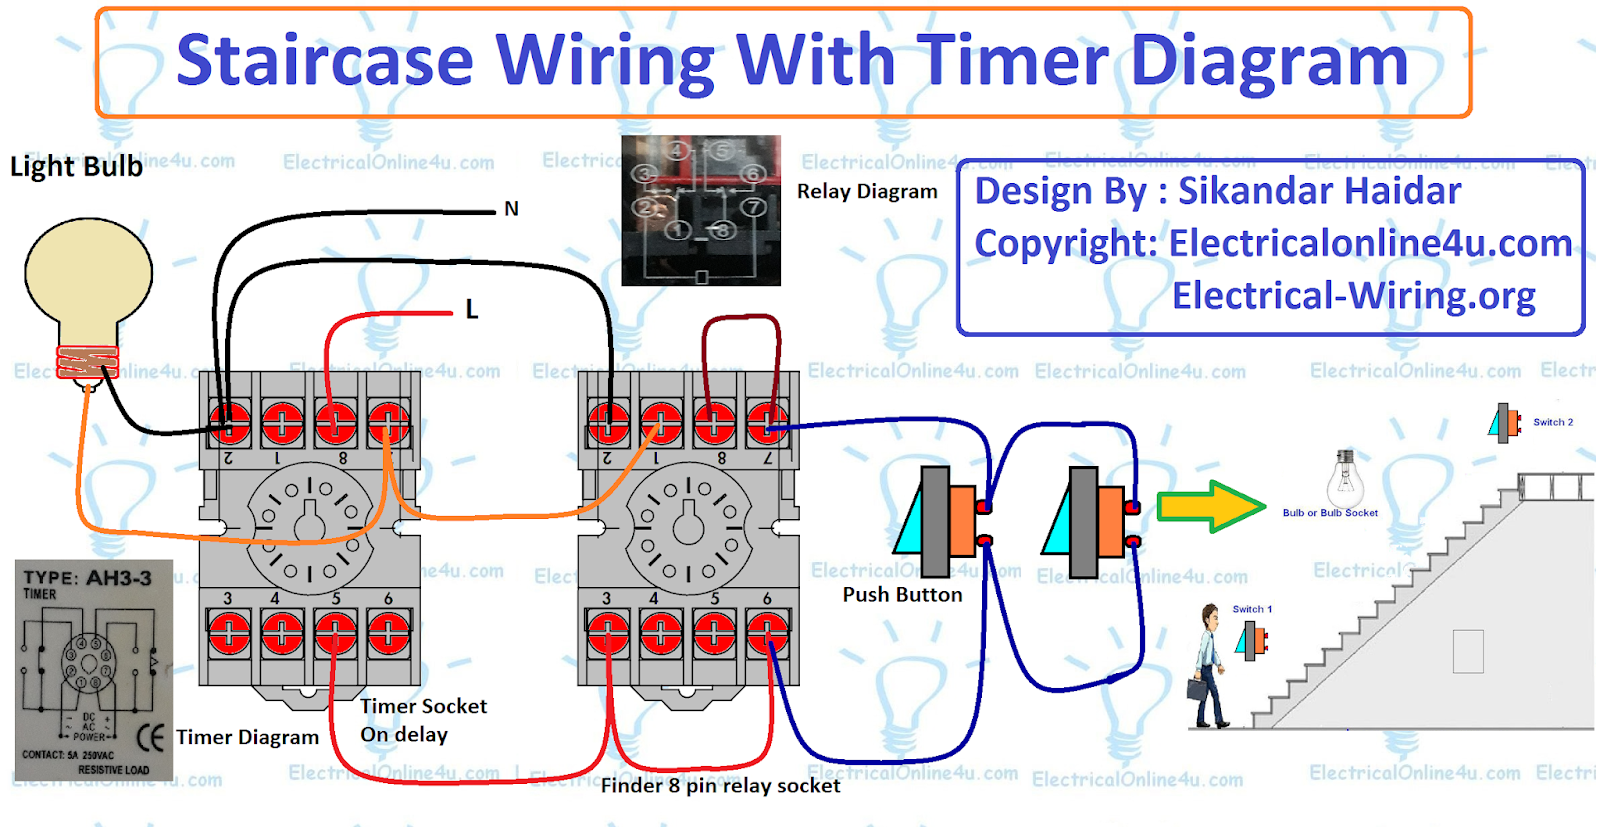 wrg 0325] wiring diagram single pole contactor with timerthis post is about the staircase timer wiring diagram in the diagram i use the